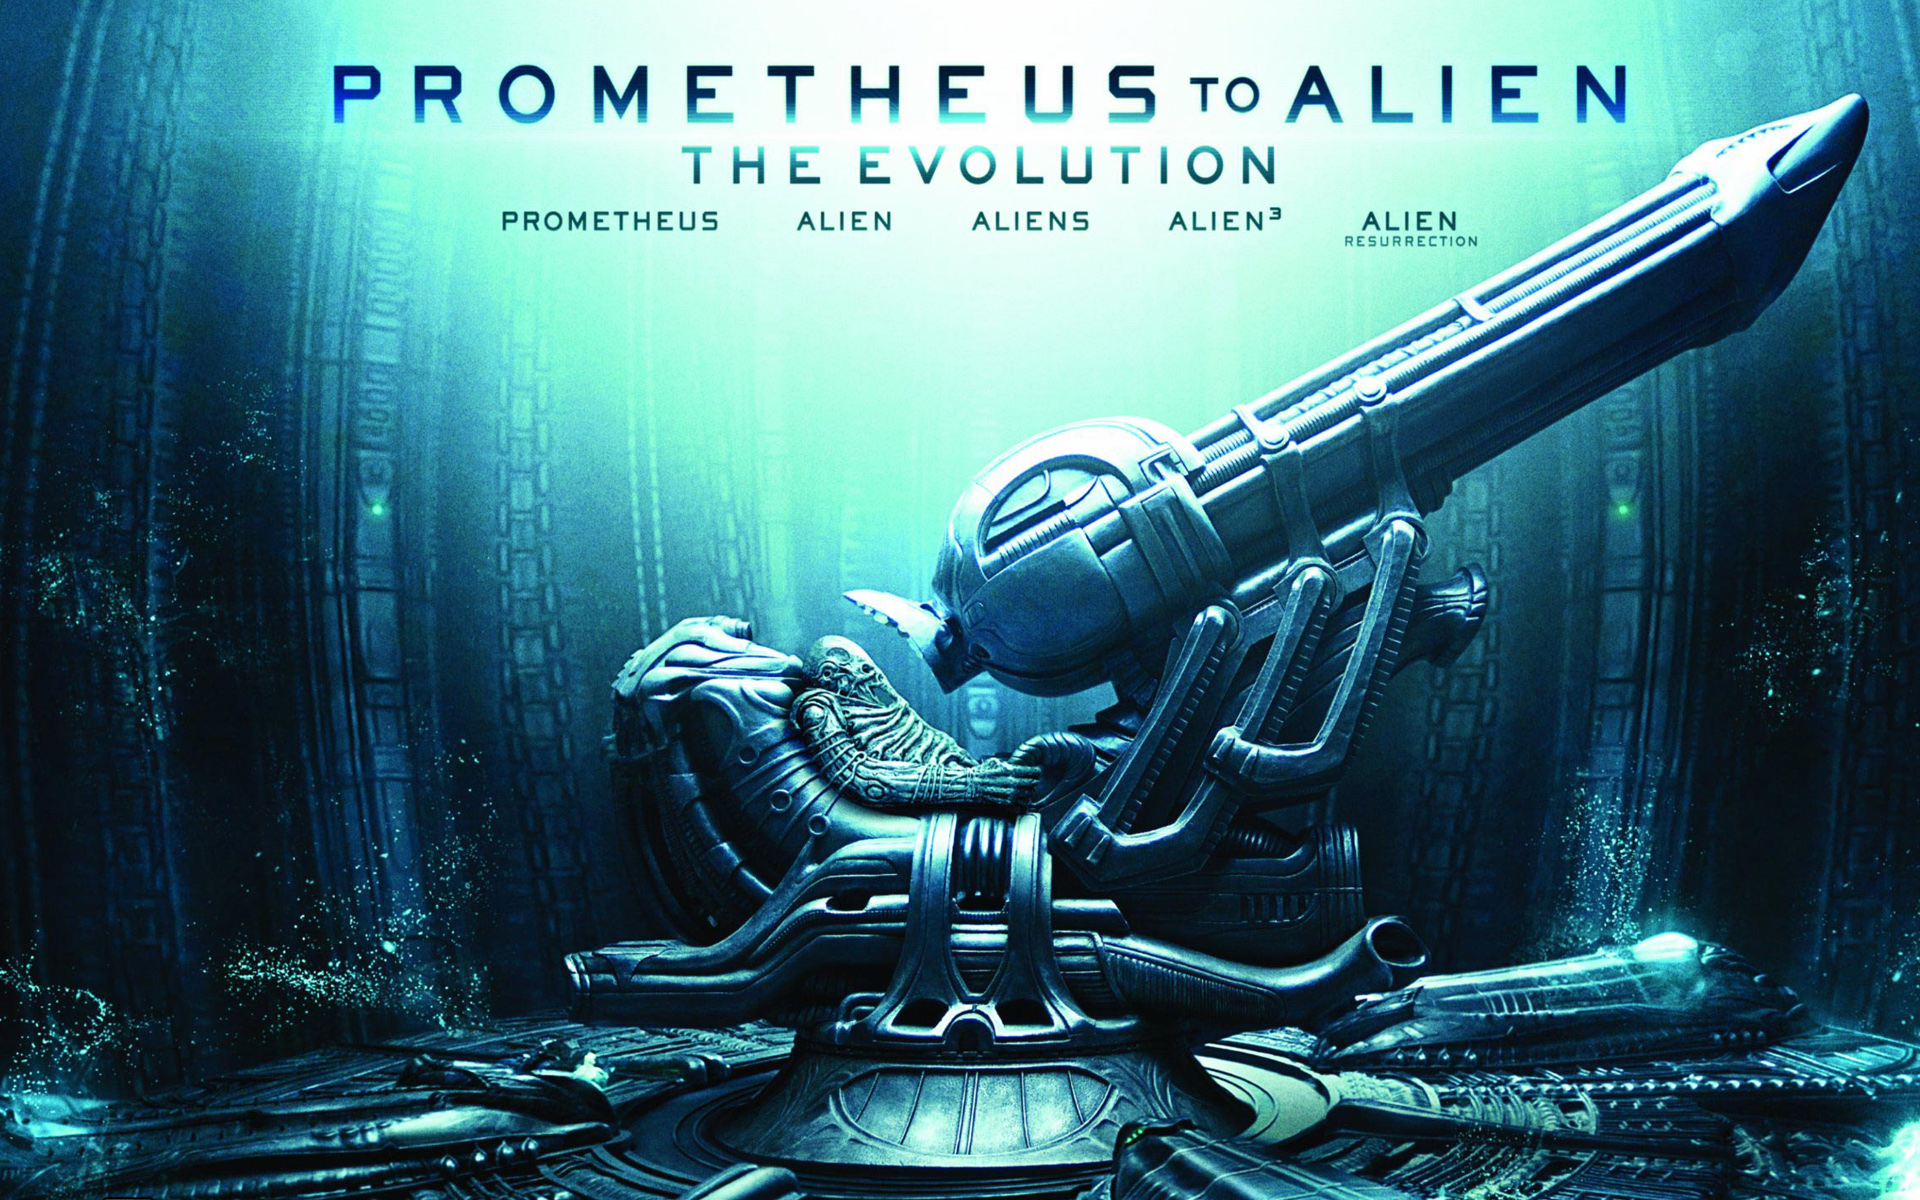 Prometheus to Alien The Evolution